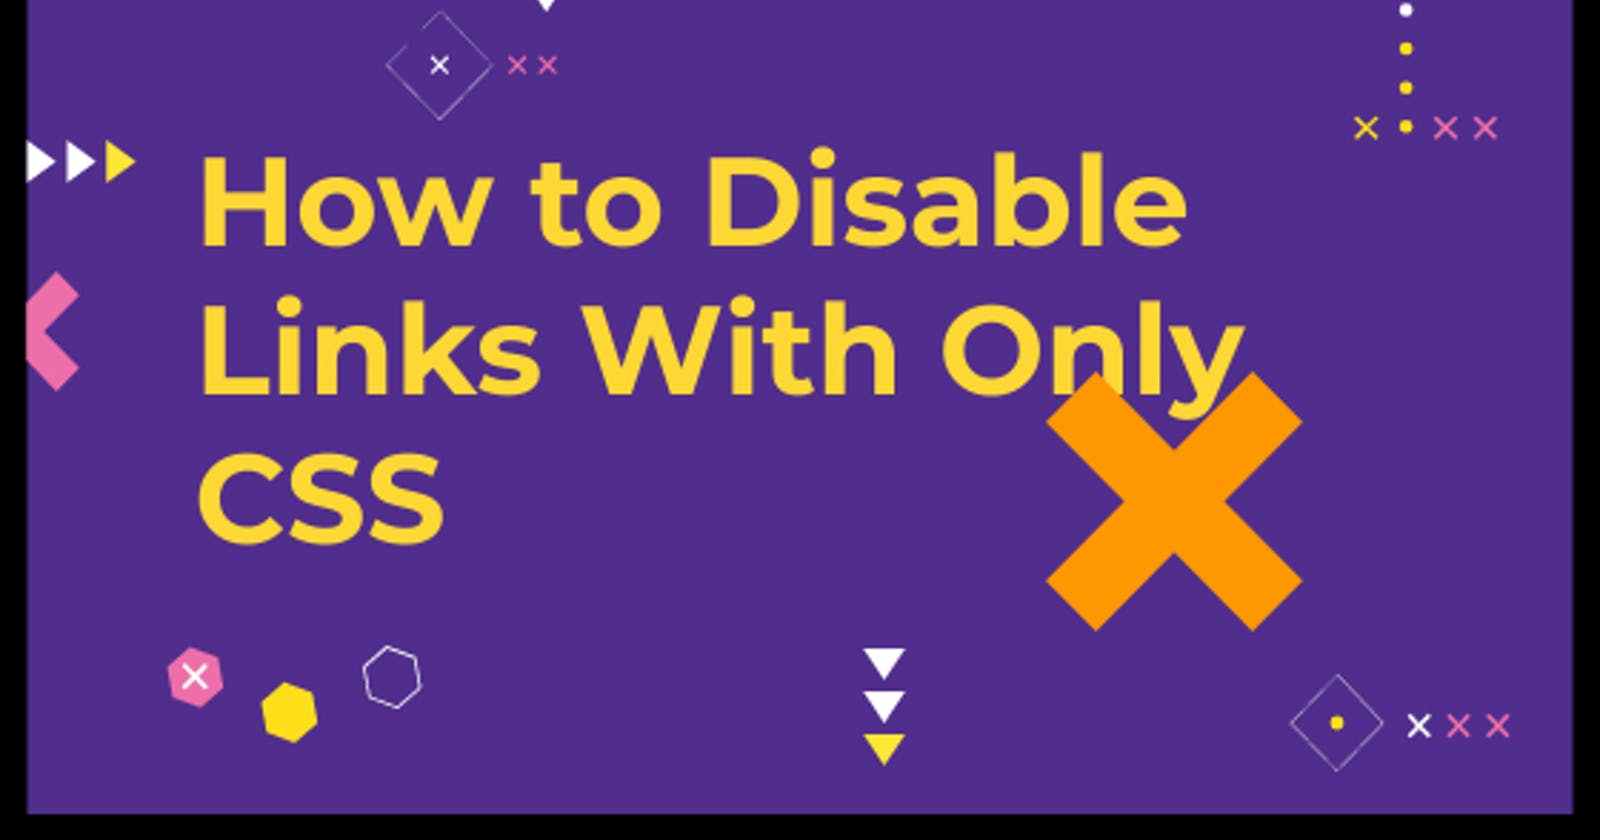 How to Disable Links With Only CSS